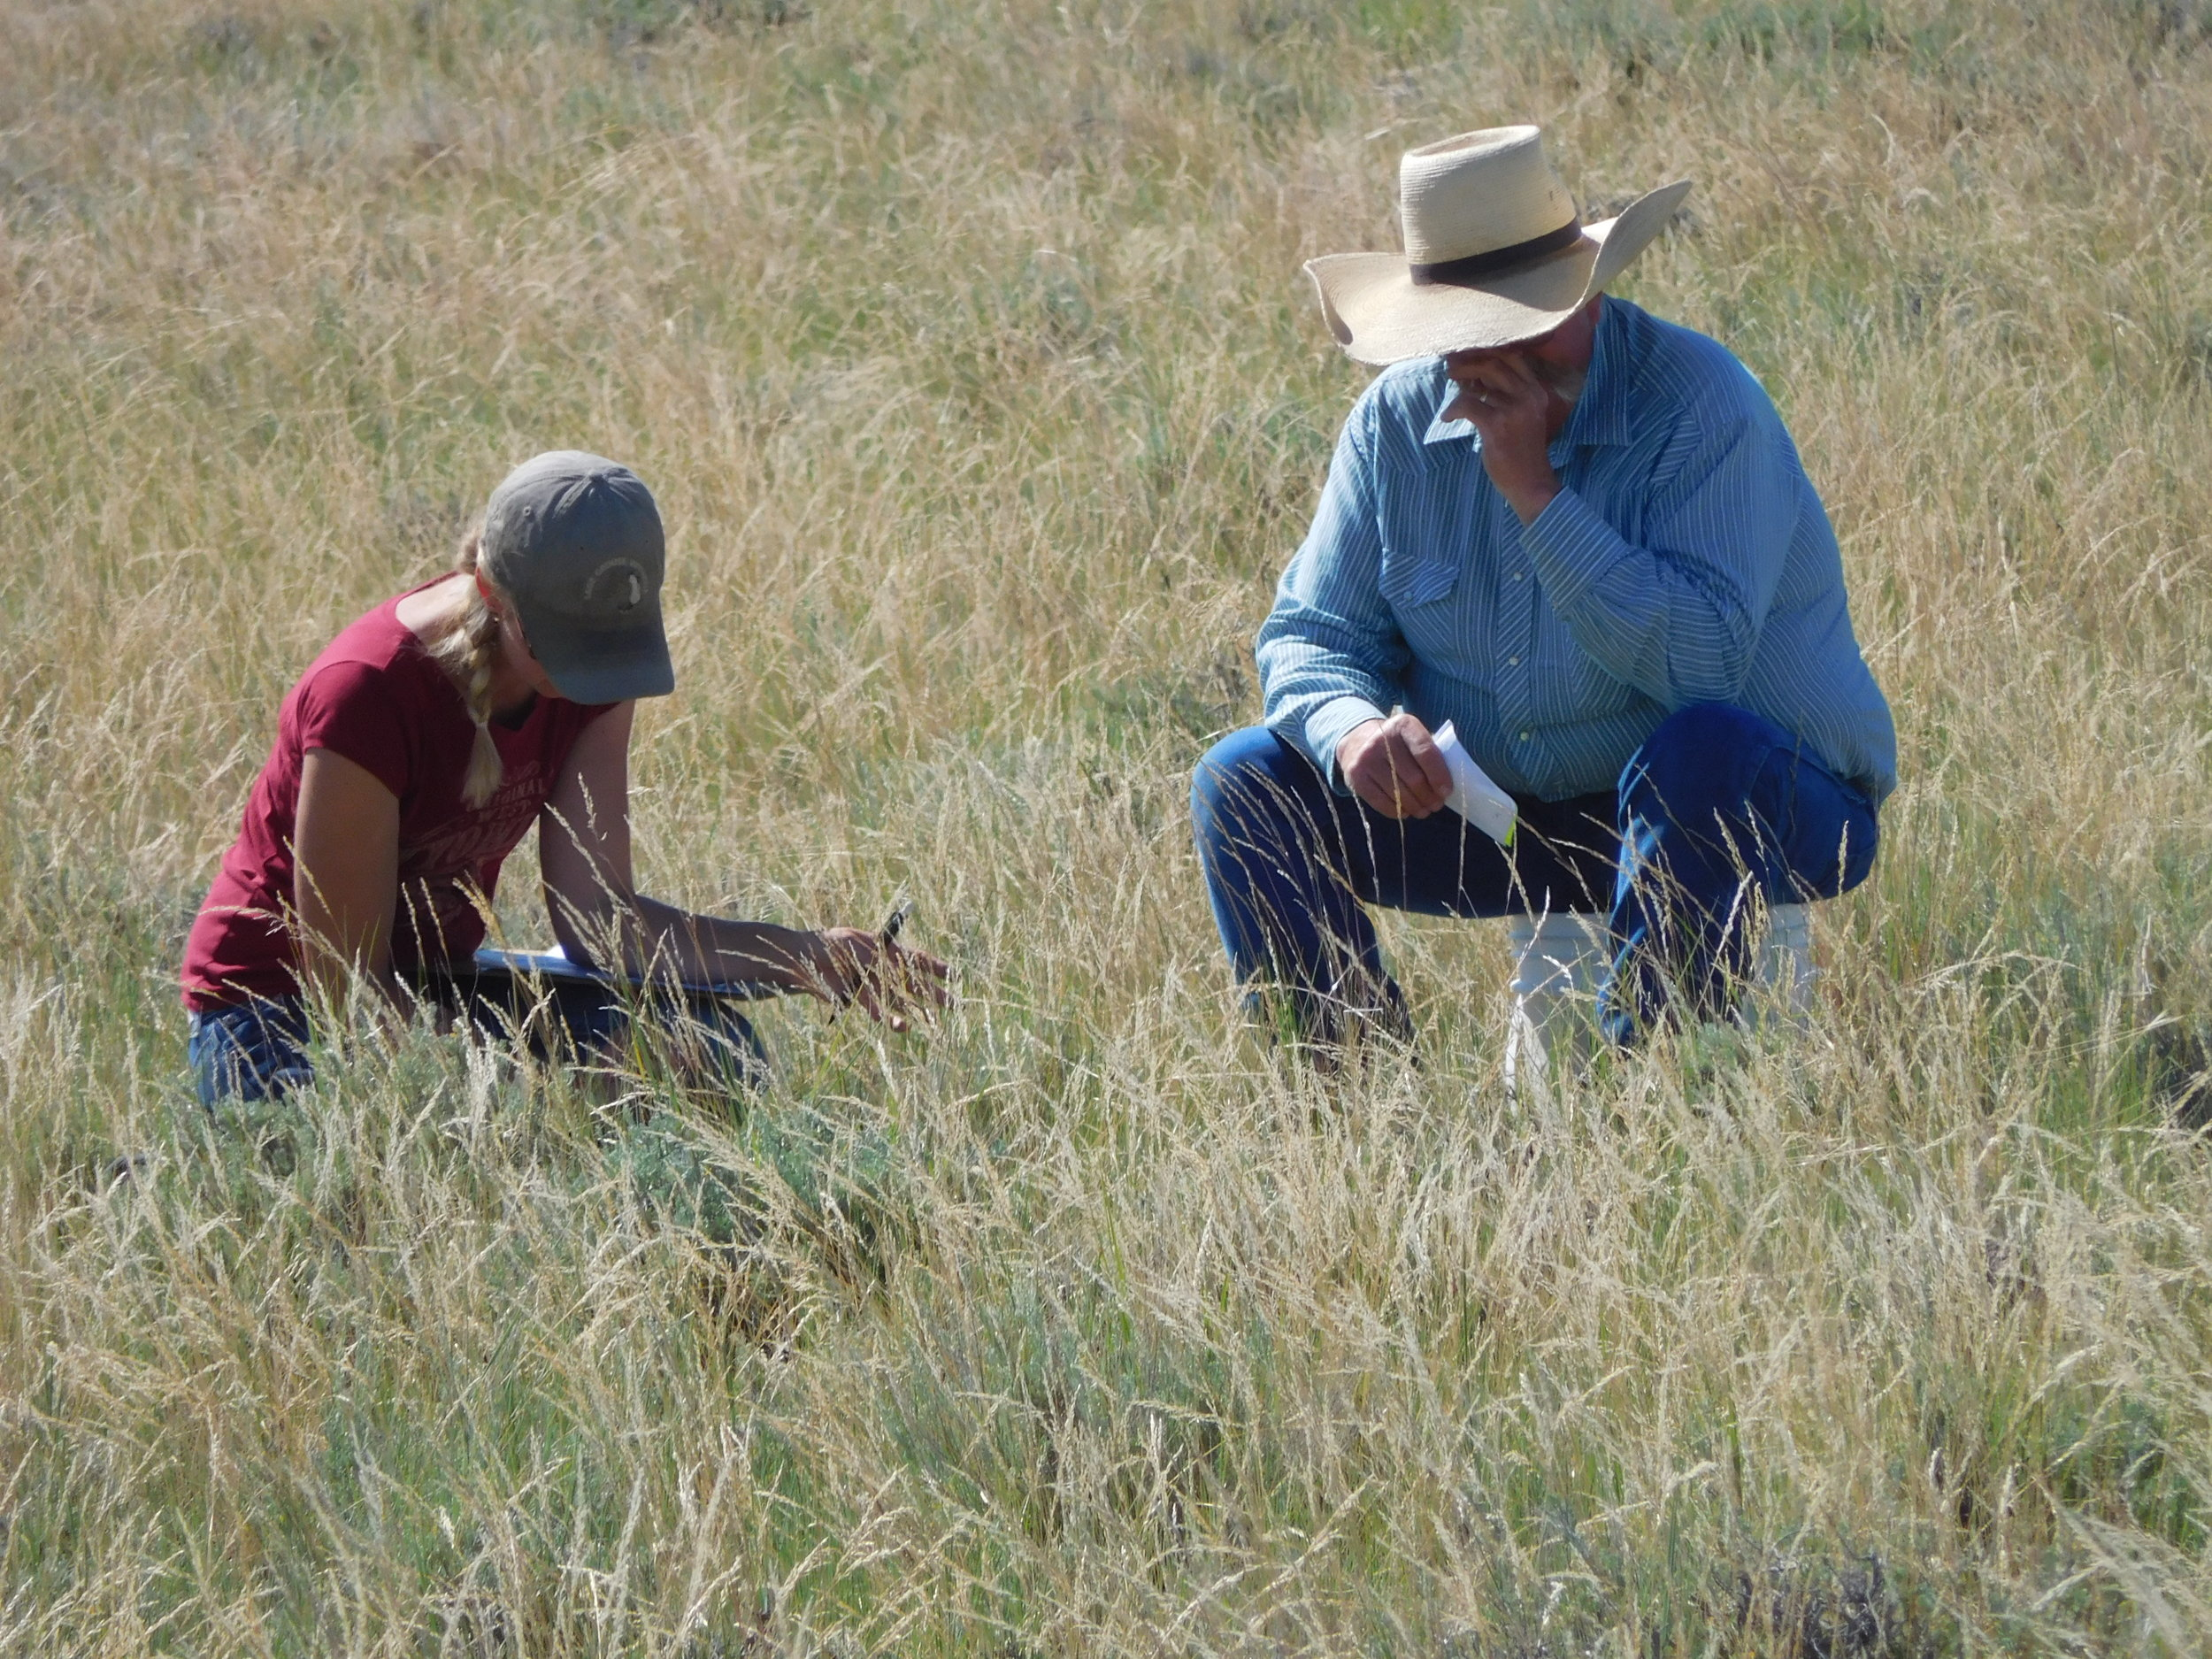 WY_Hirsch teaching a producer about rangeland health and monitoring_Ivan Laird.JPG